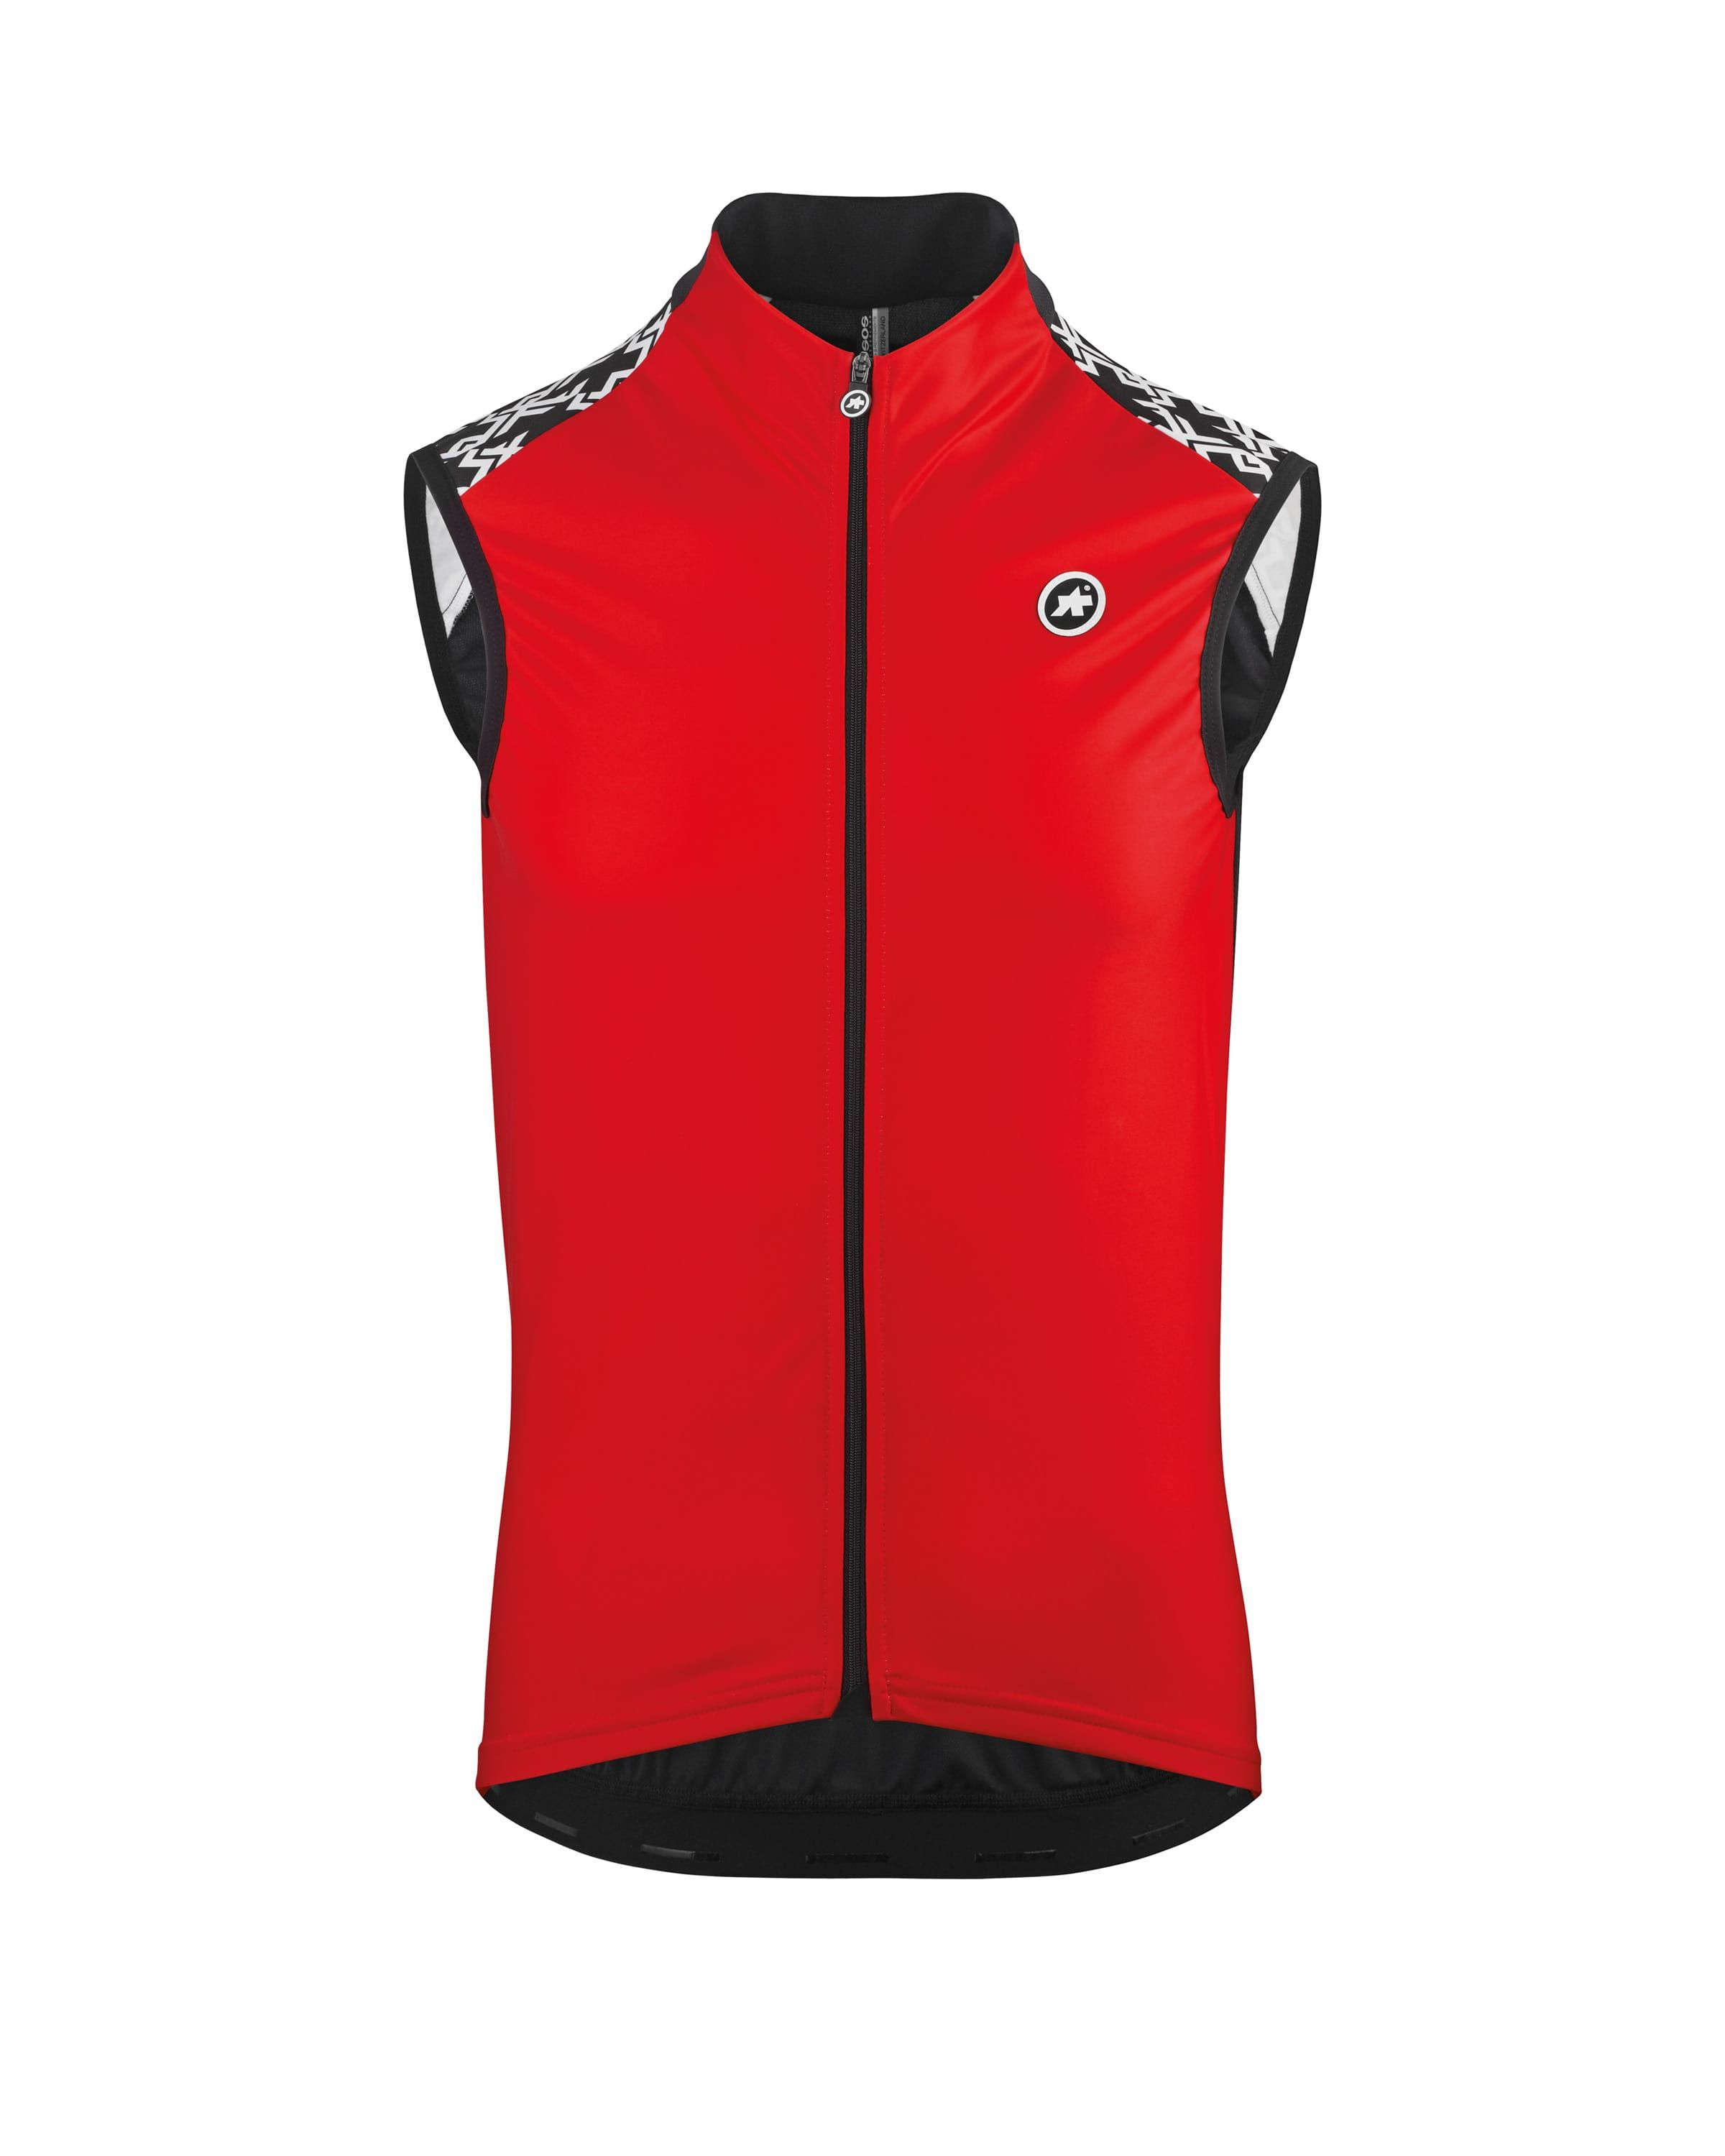 ASSOS MILLE GT VEST SPRING FALL nationalRed-Medium - Riding in the  changeable climates of 7ba793225